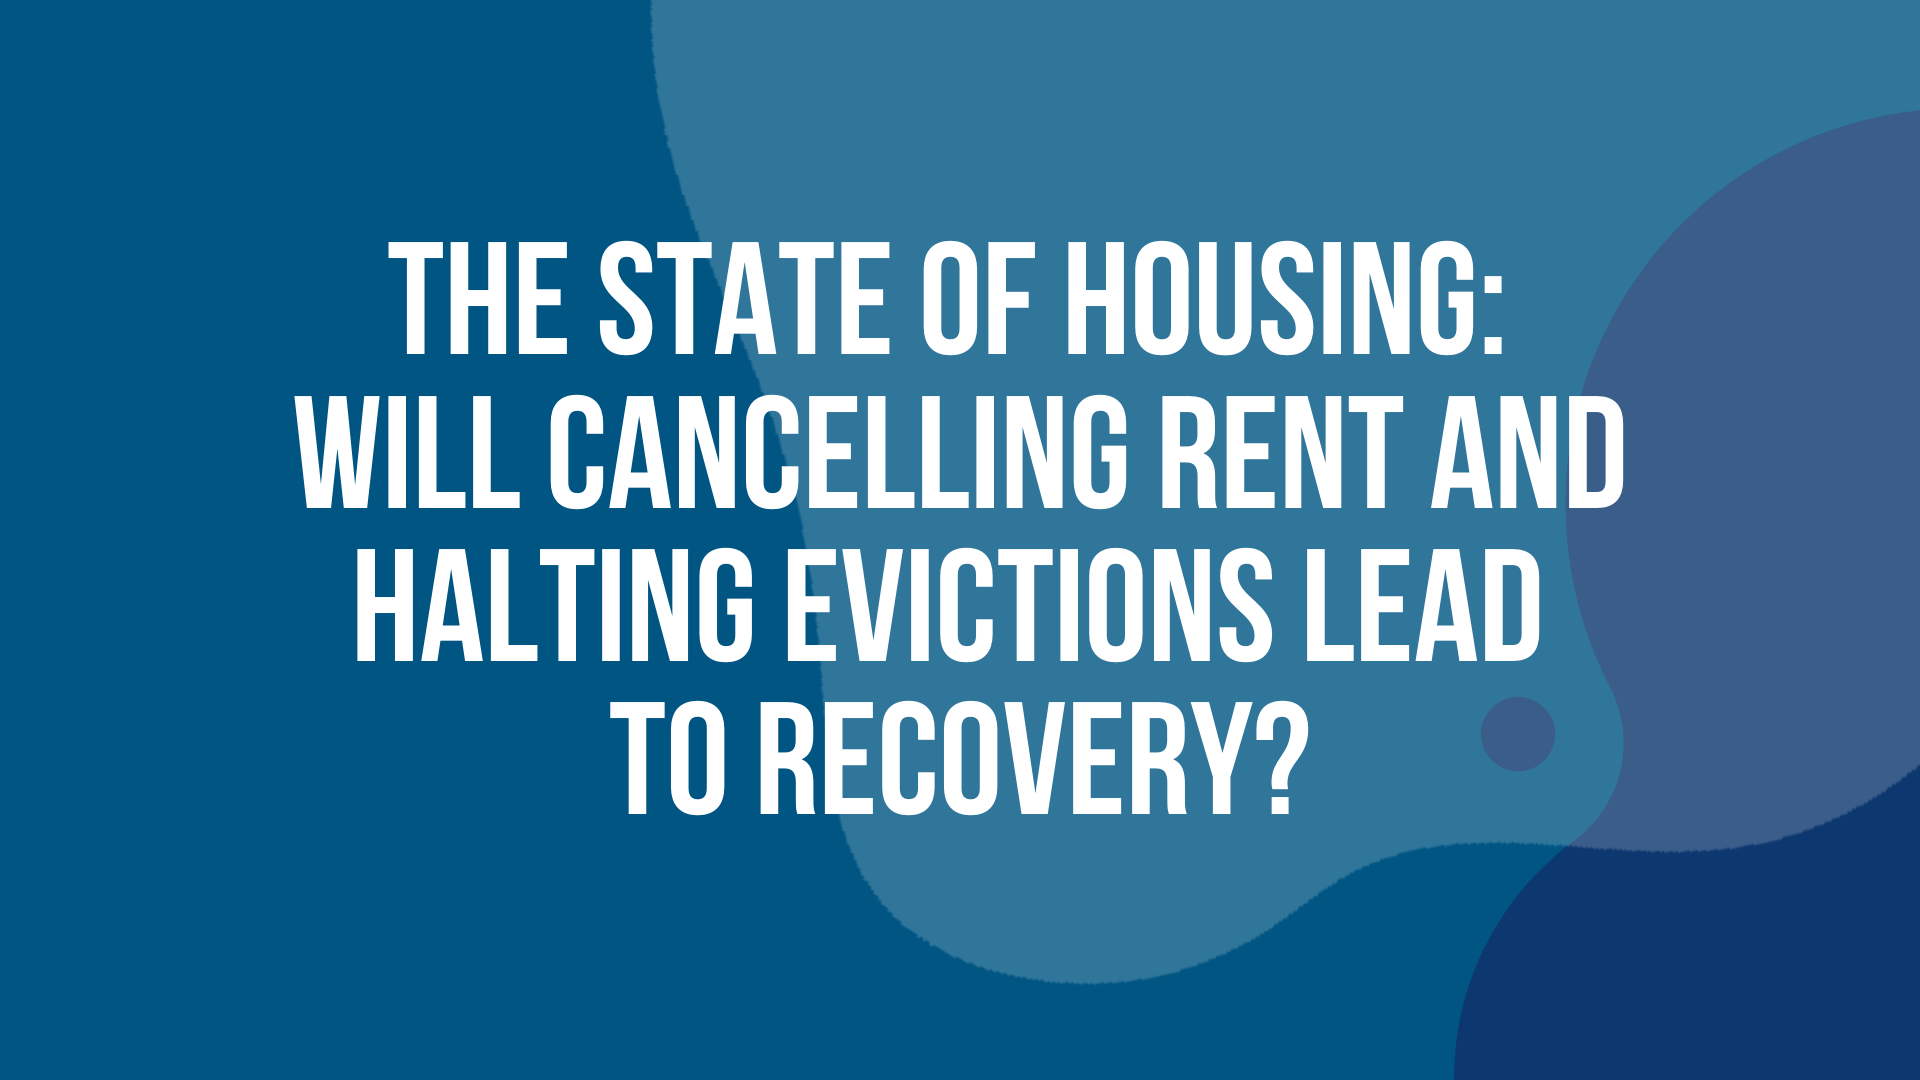 The State of Housing: Will Cancelling Rent and Halting Evictions Lead to Recovery?